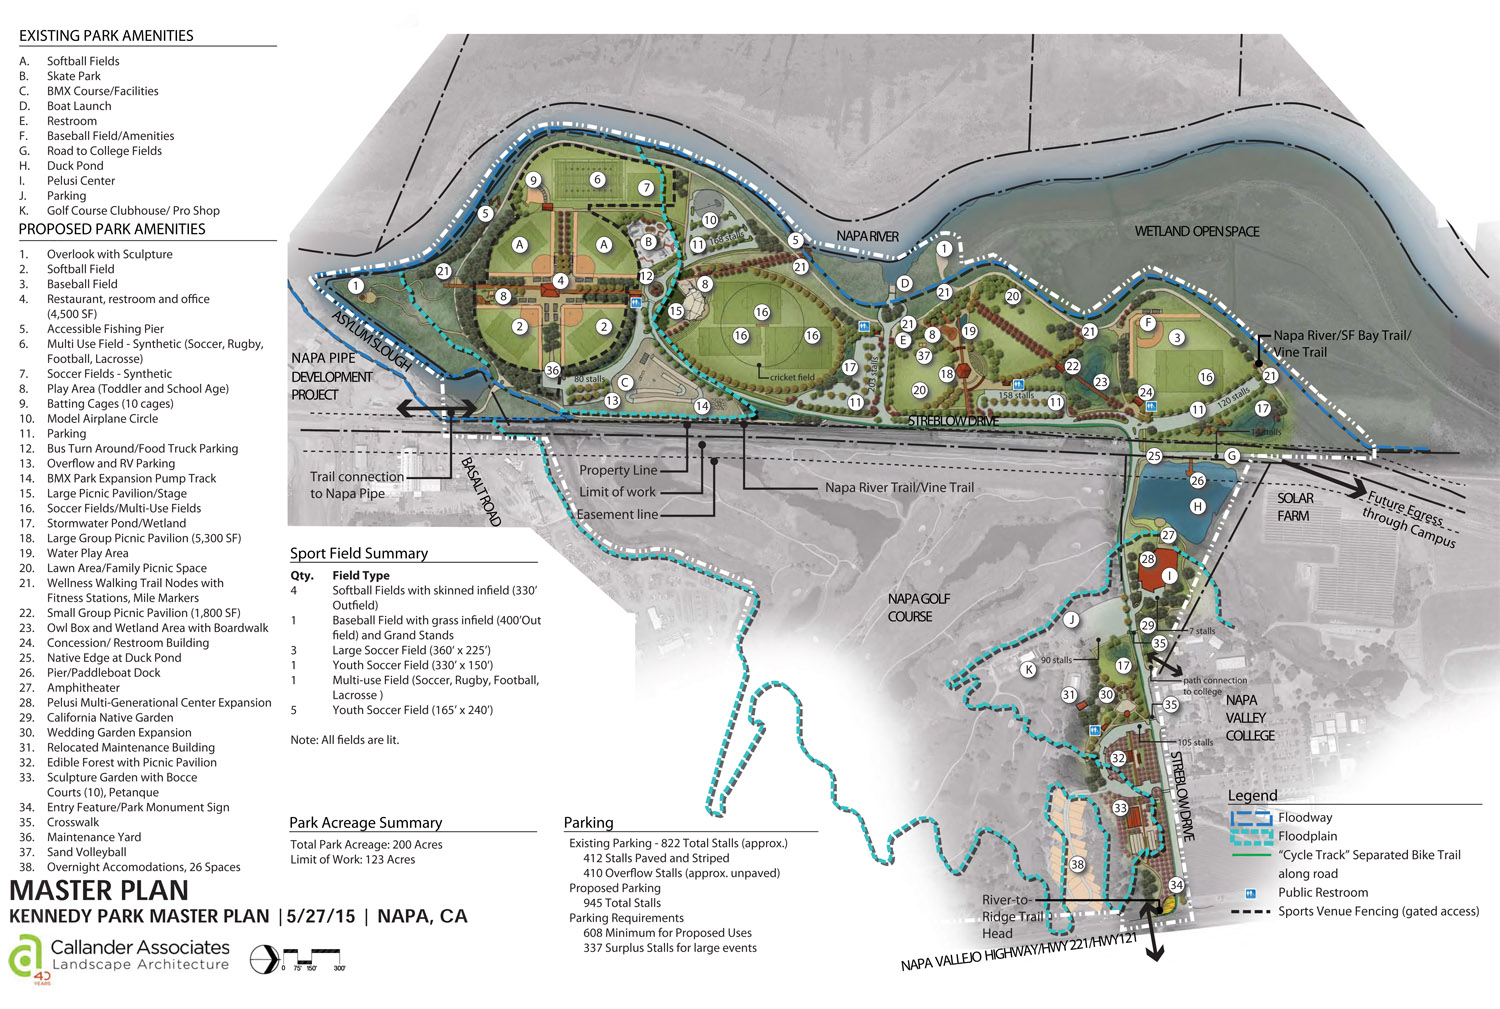 Master Plan for Kennedy Park